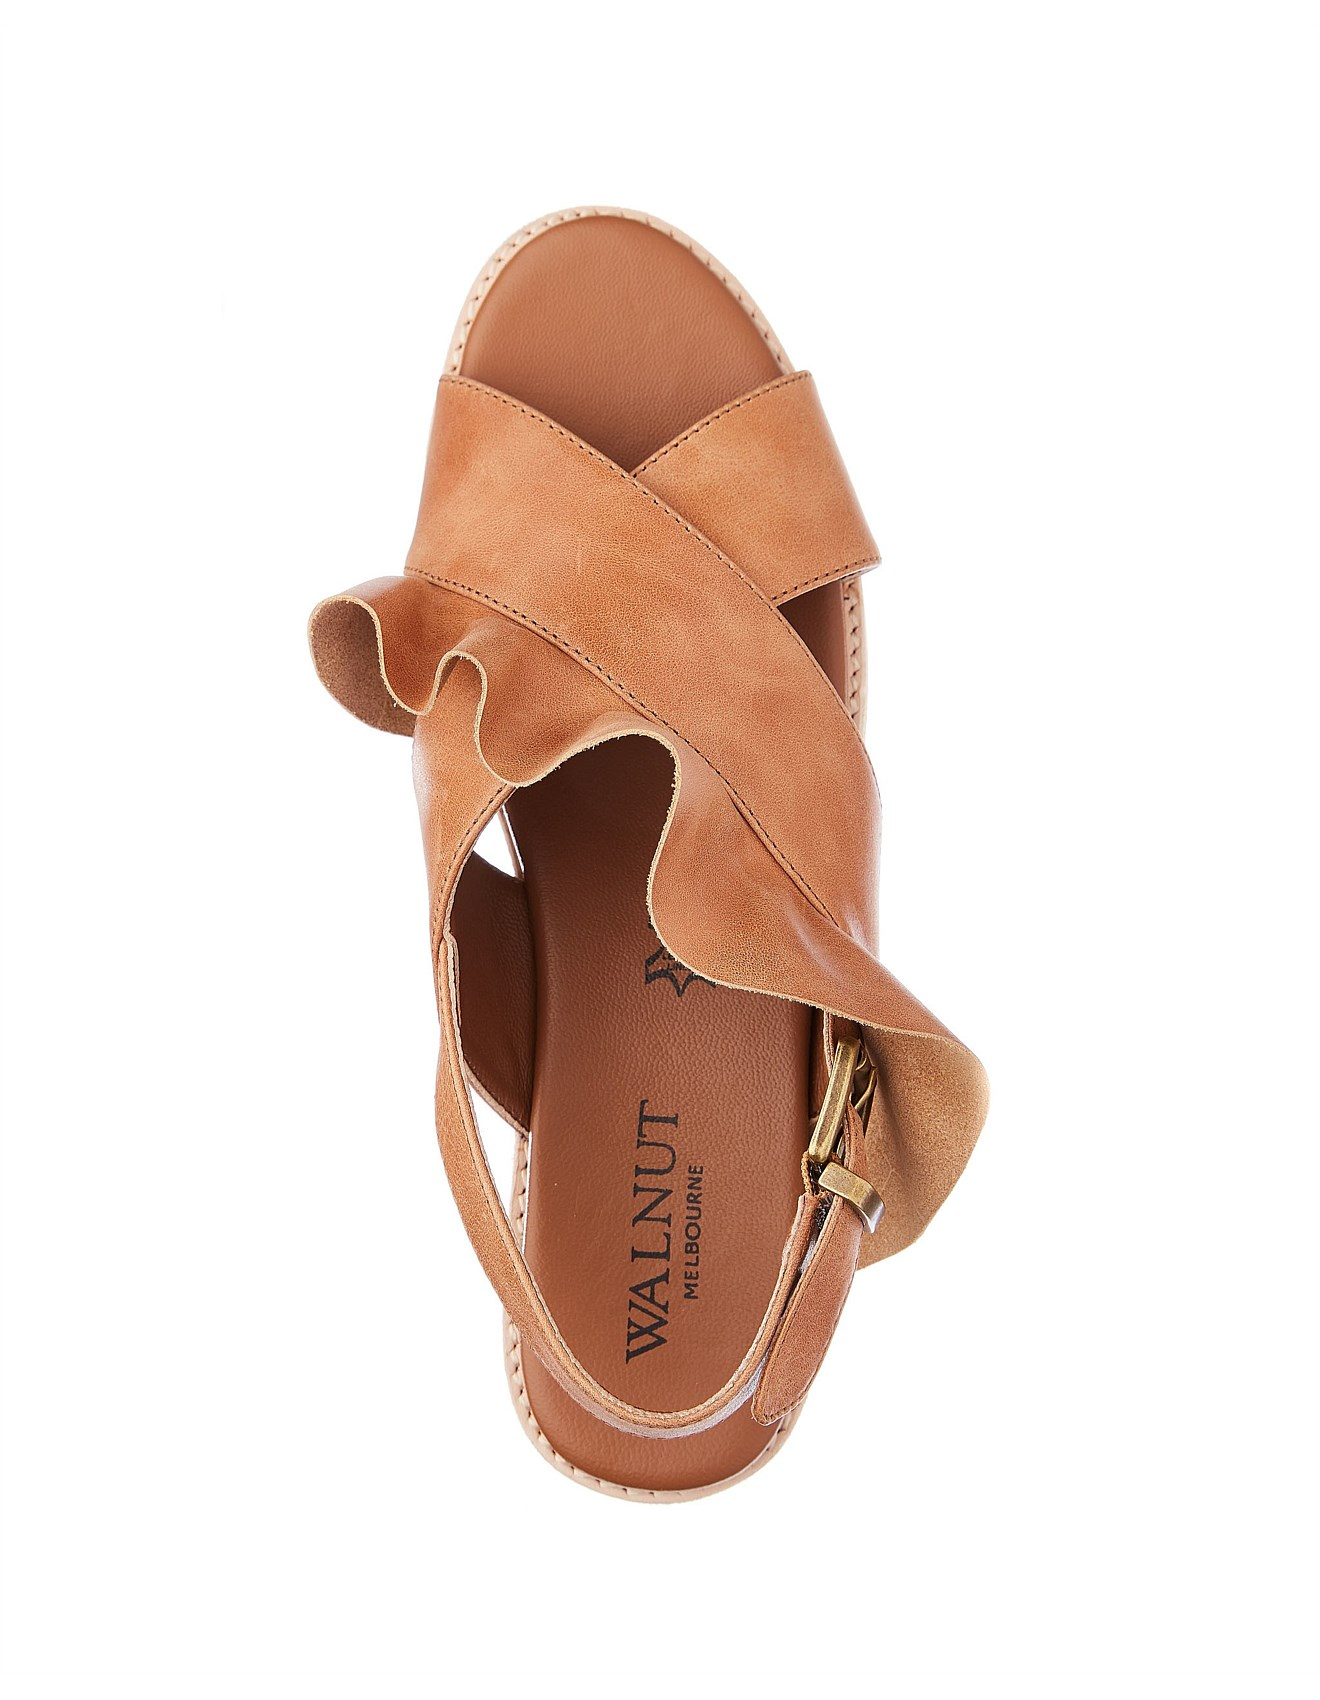 9ac7f4339b2b Eloise Leather Ruffle Sandal Special Offer On Sale. 1